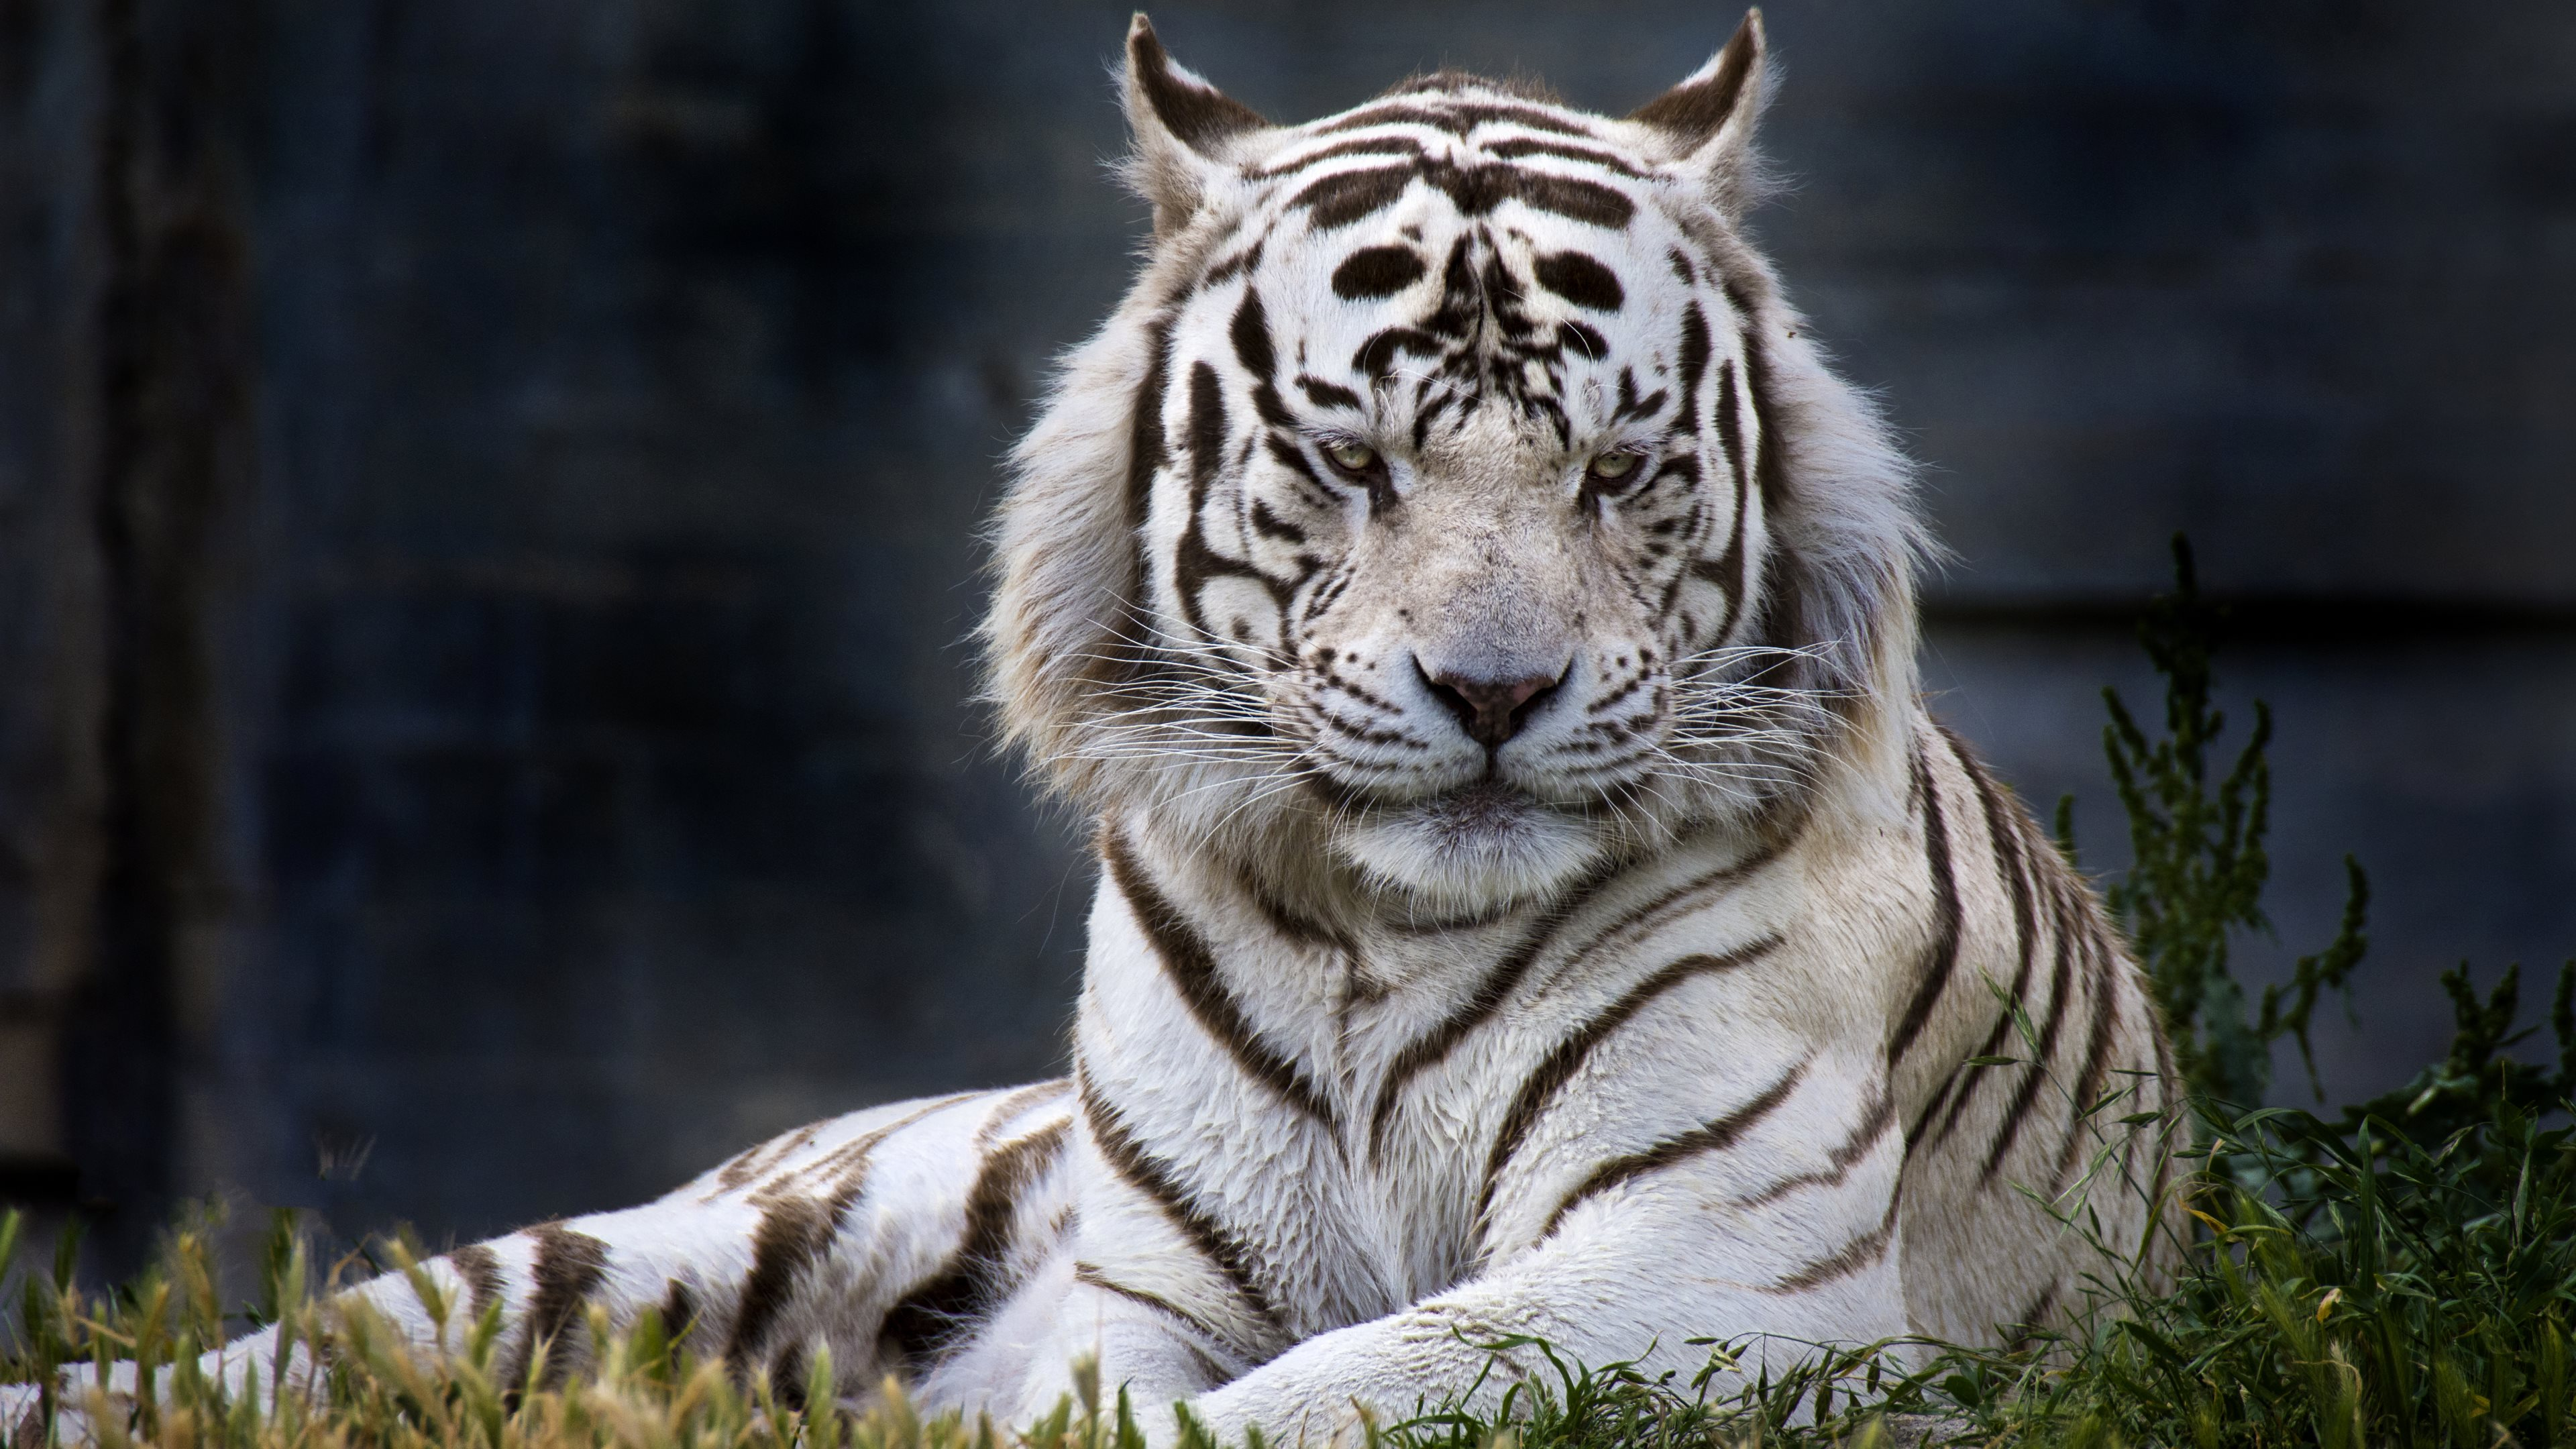 at zoo madrid a white tiger hd wallpapers 4k